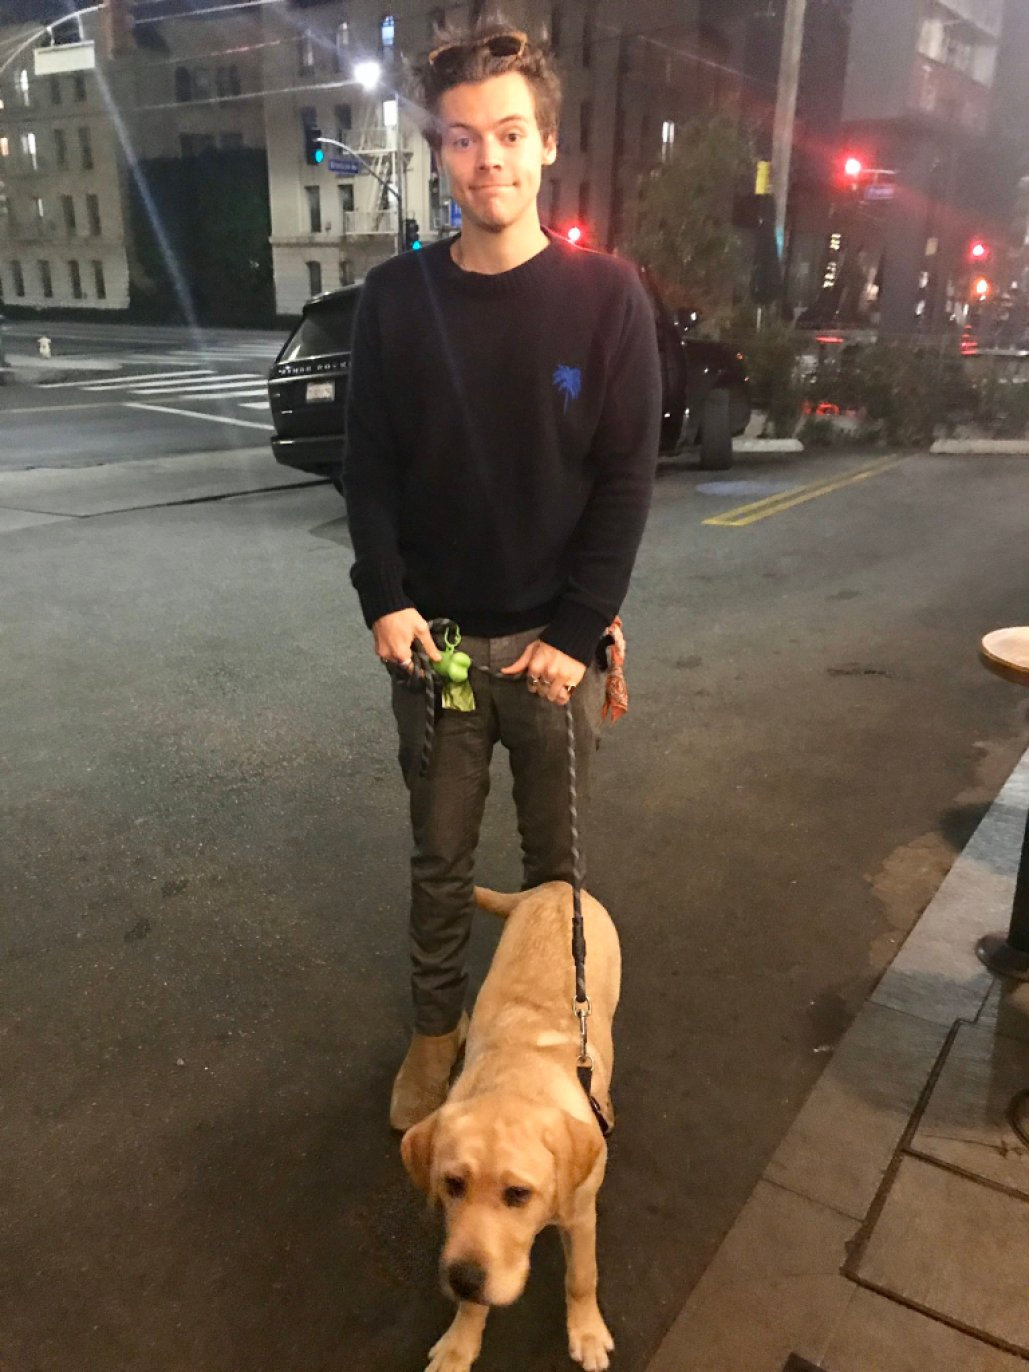 Harry Styles Watched A Stranger's Dog While The Owner Went Inside A Restaurant To Pick Up Food